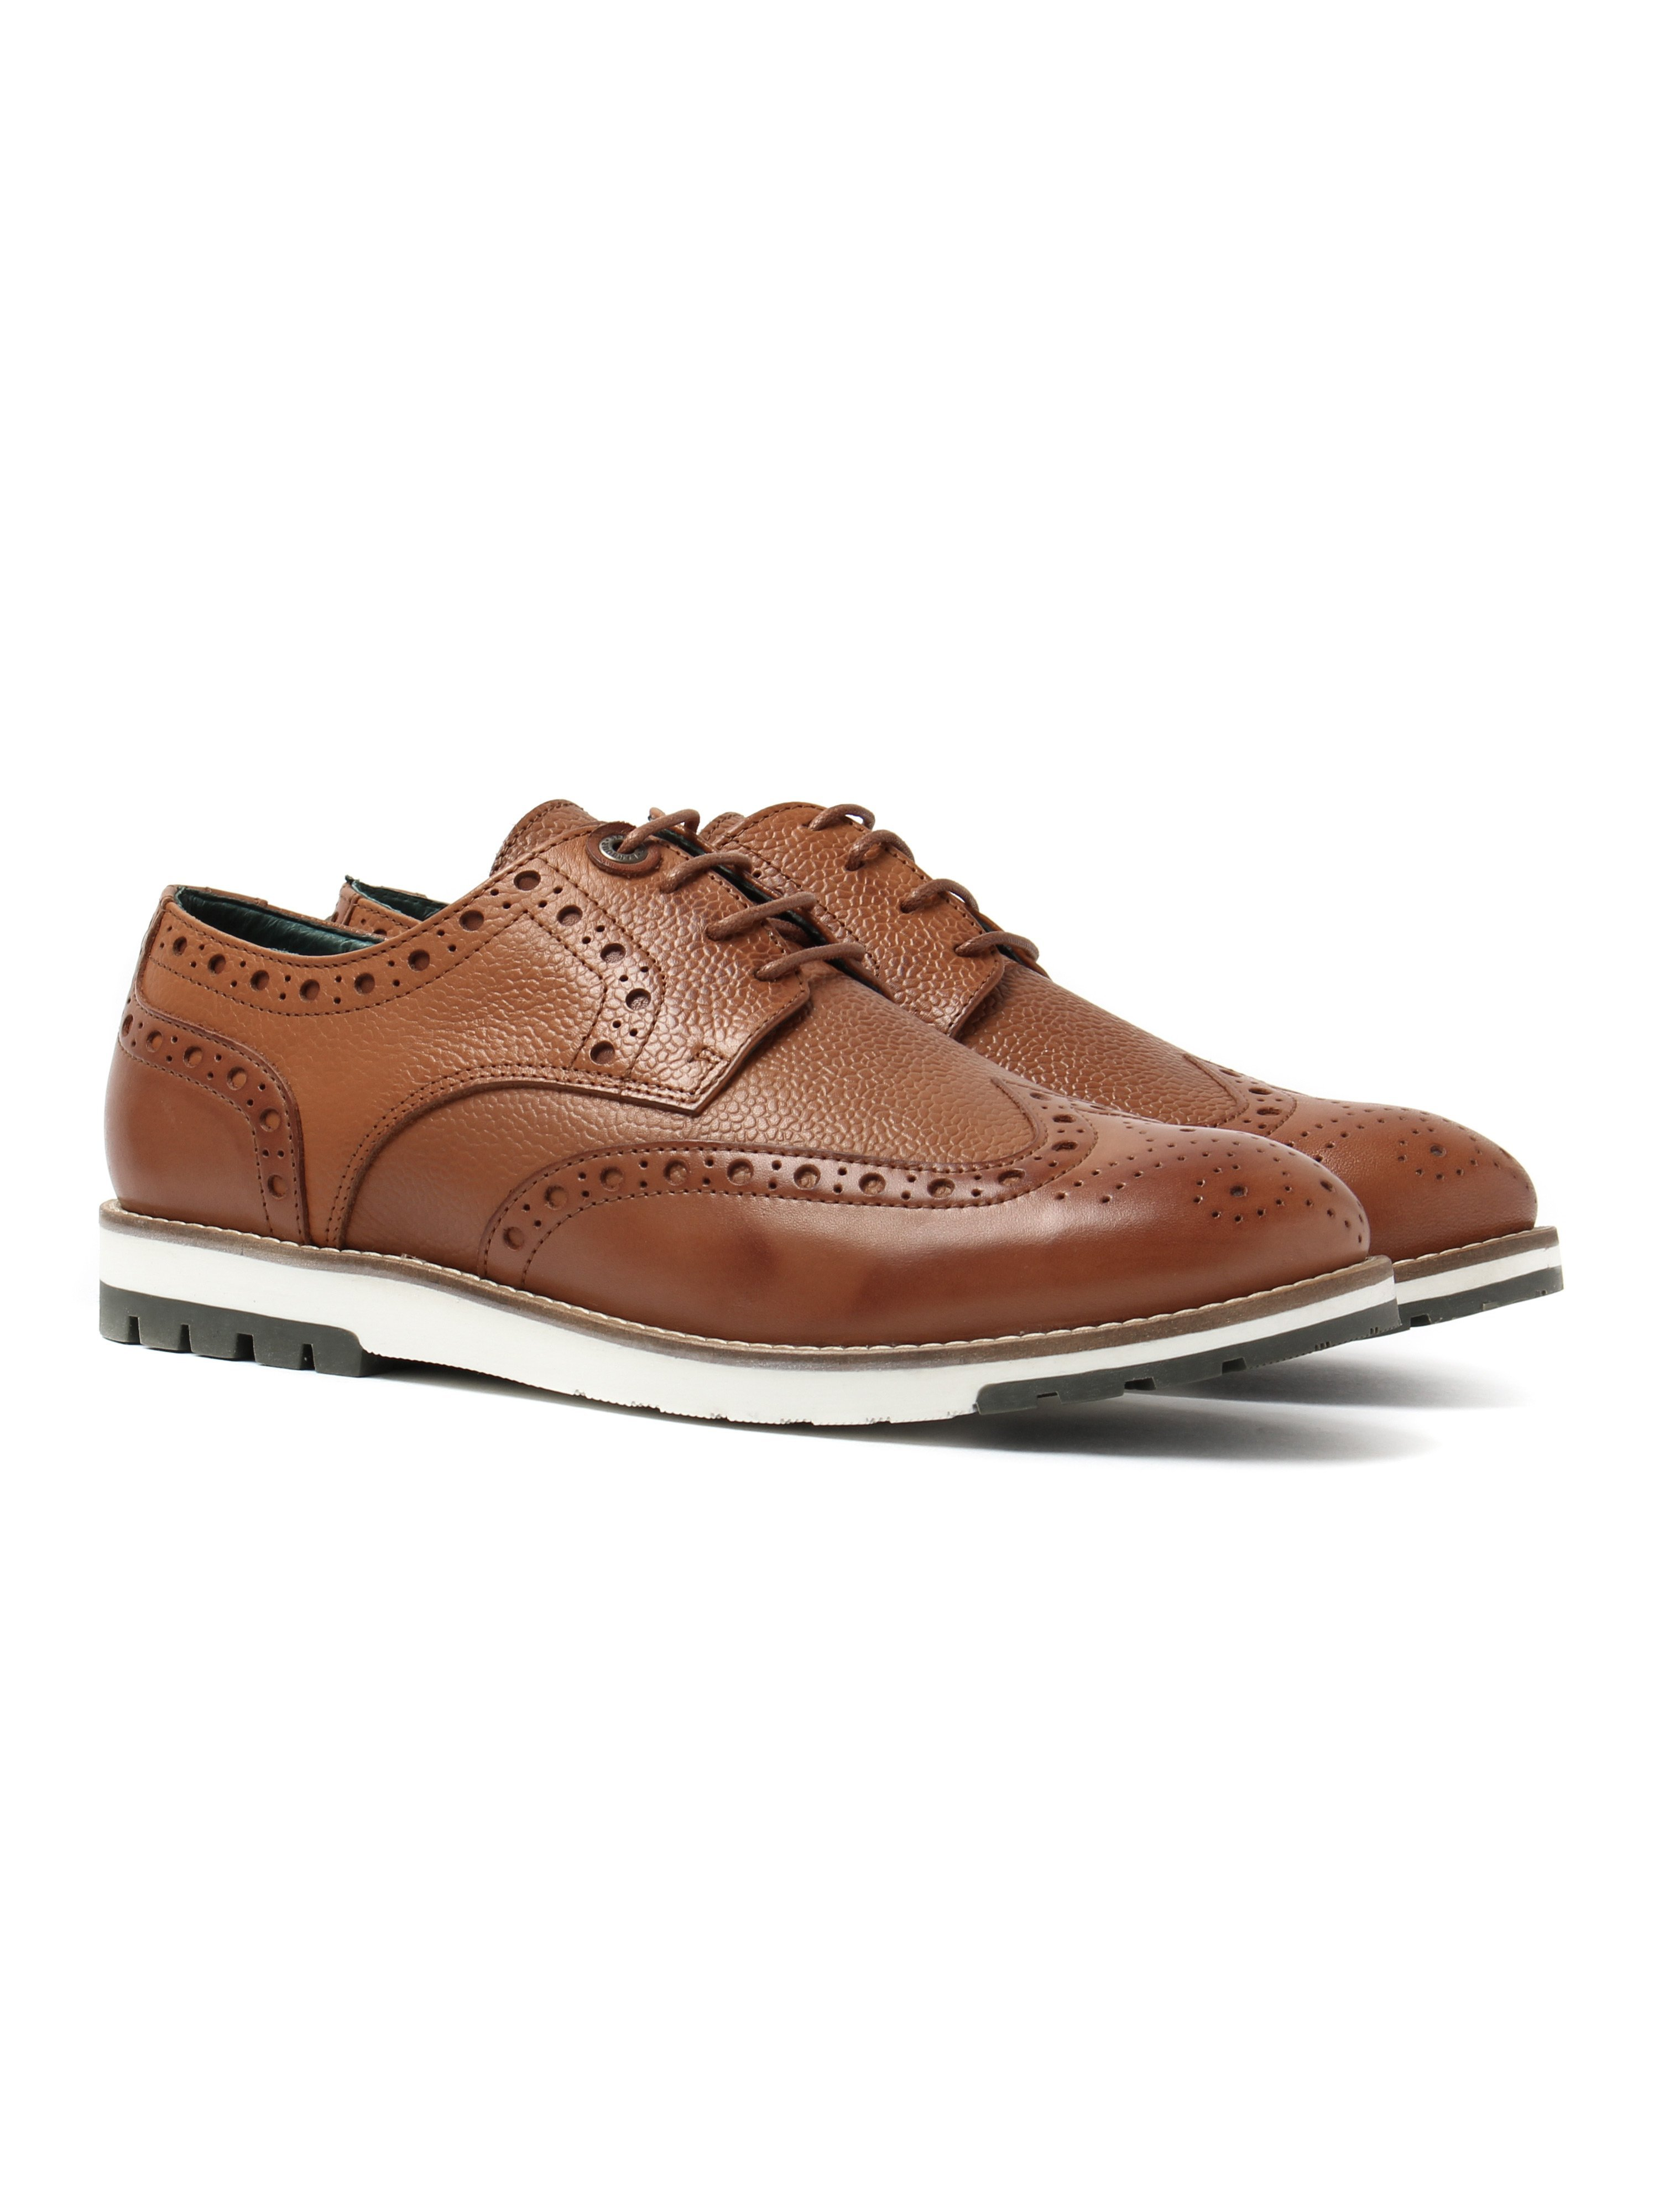 Barbour Mens Palmer Brogues - Tan Leather